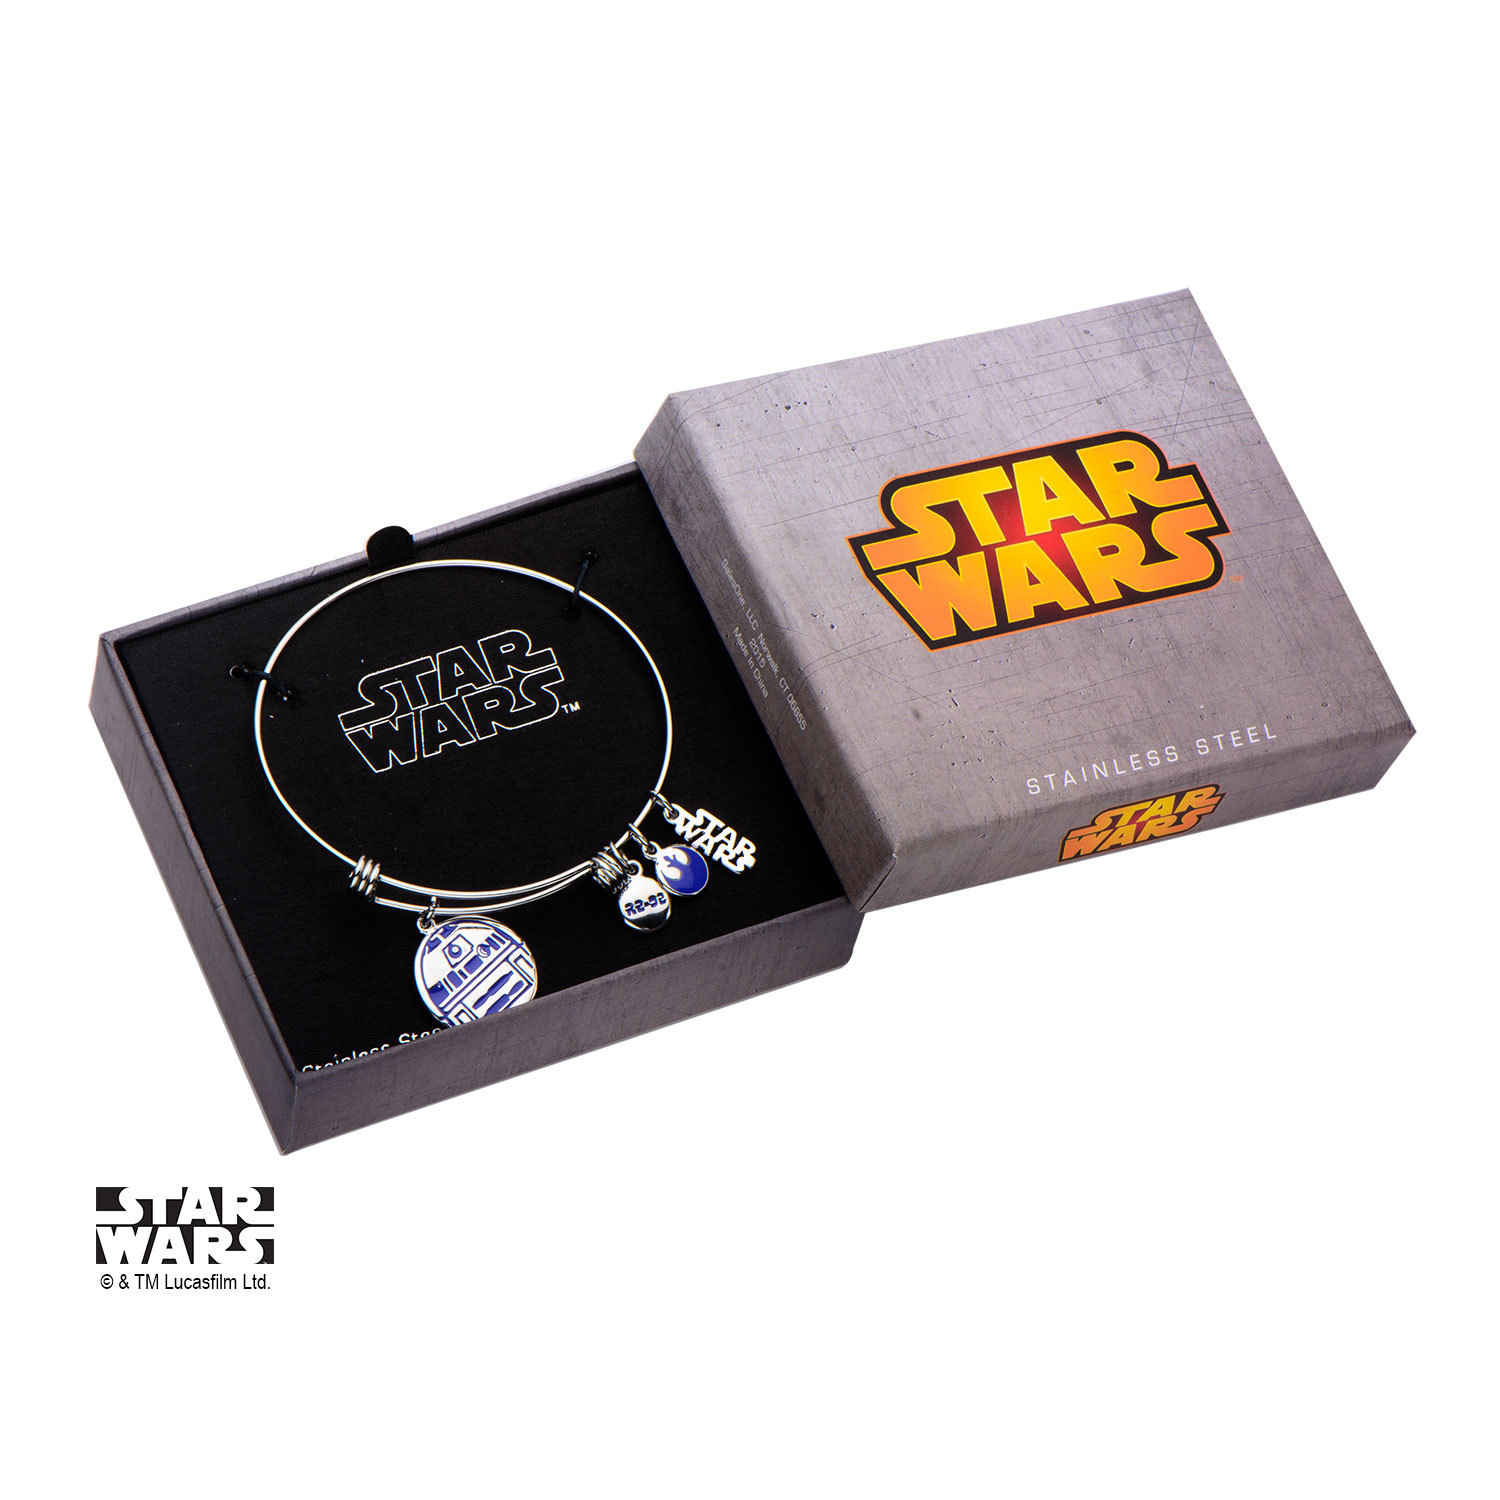 Star Wars R2D2 Stainless Steel Expandable Bracelet image